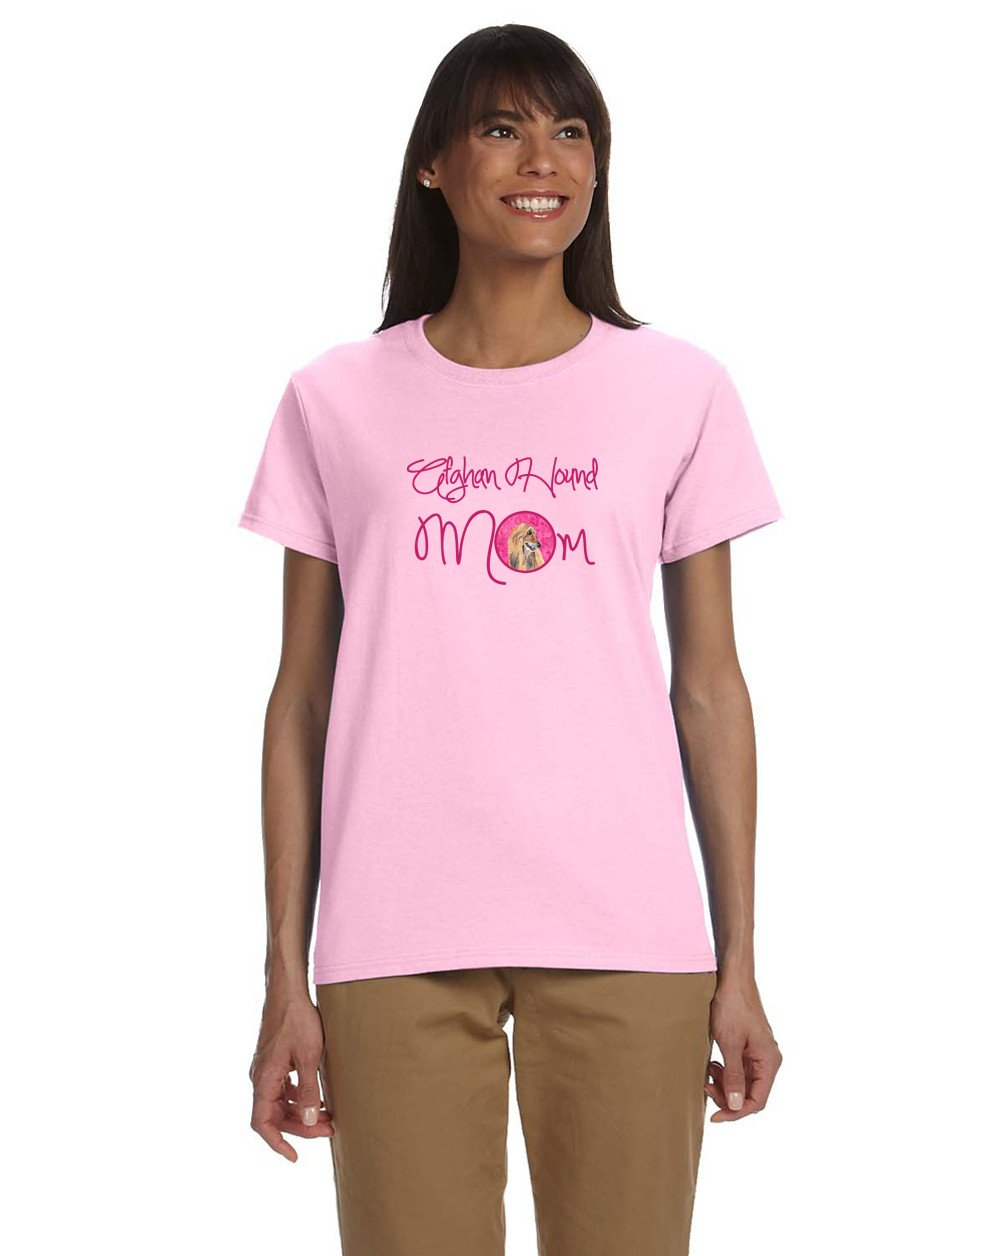 Pink Afghan Hound Mom T-shirt Ladies Cut Short Sleeve Medium SC9509PK-978-M by Caroline's Treasures